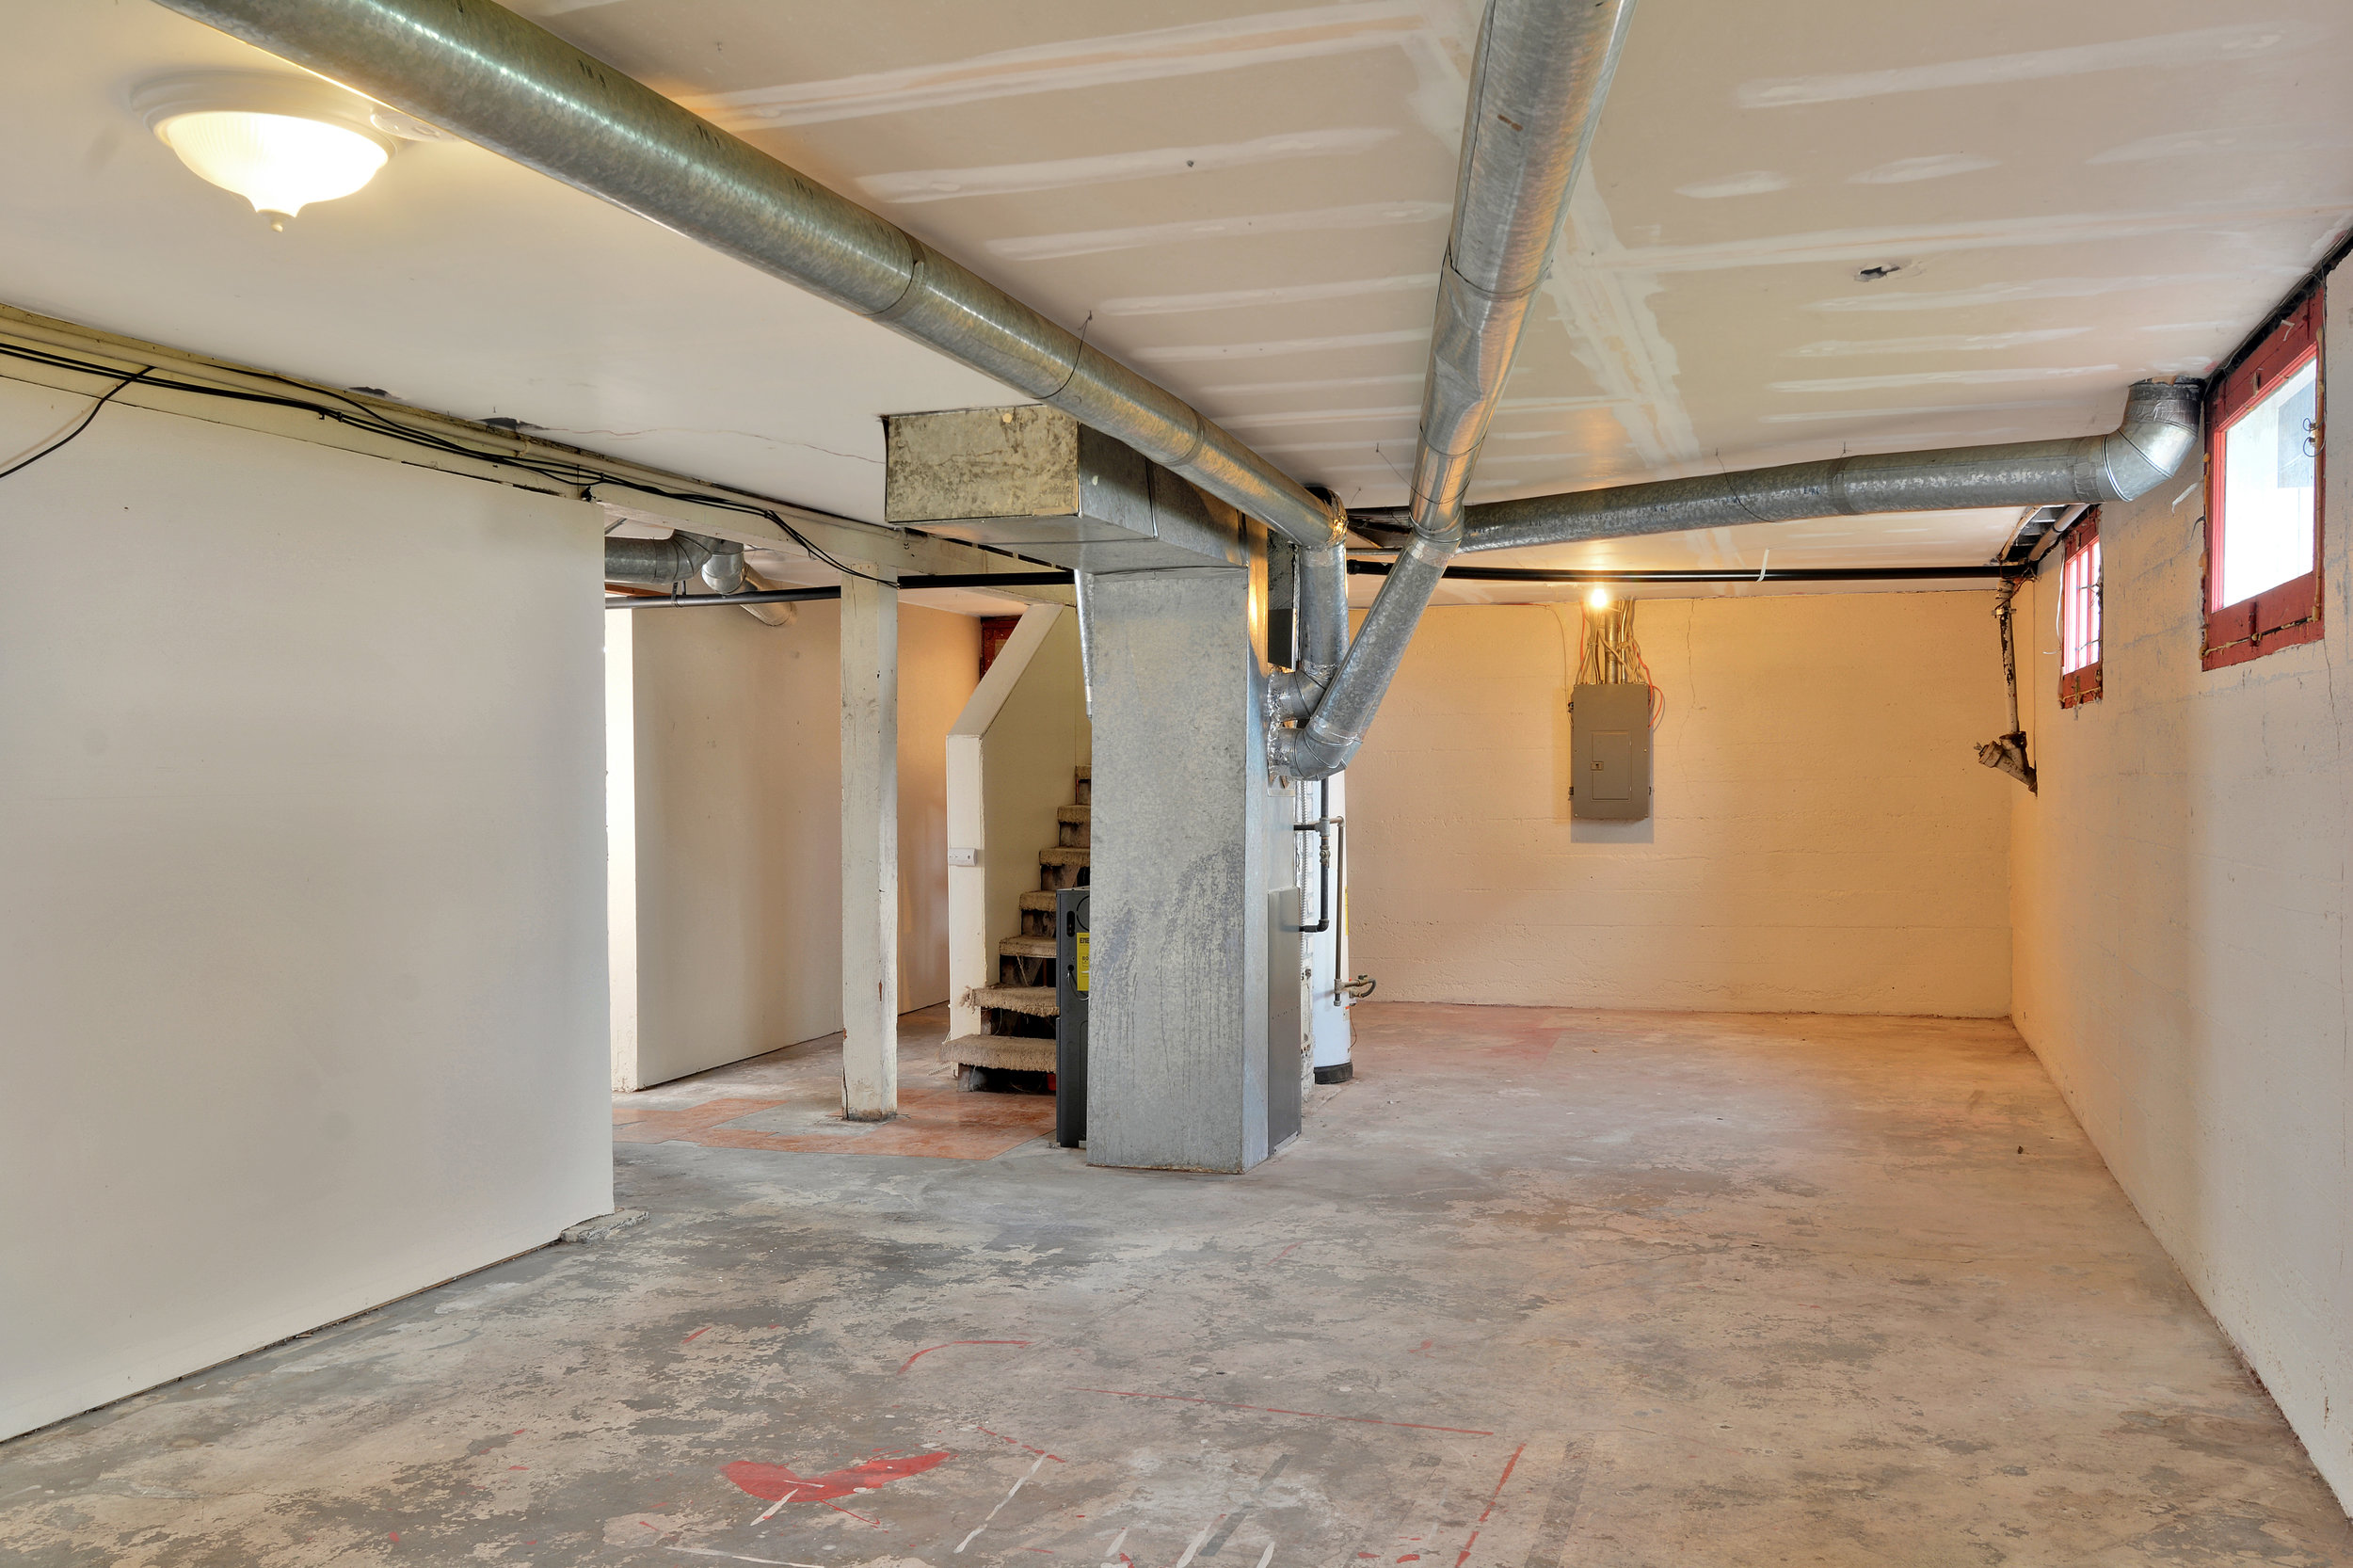 The unfinished basement offers plenty of space for storage, or set up a workshop. The gas furnace and gas water heater are located down here.